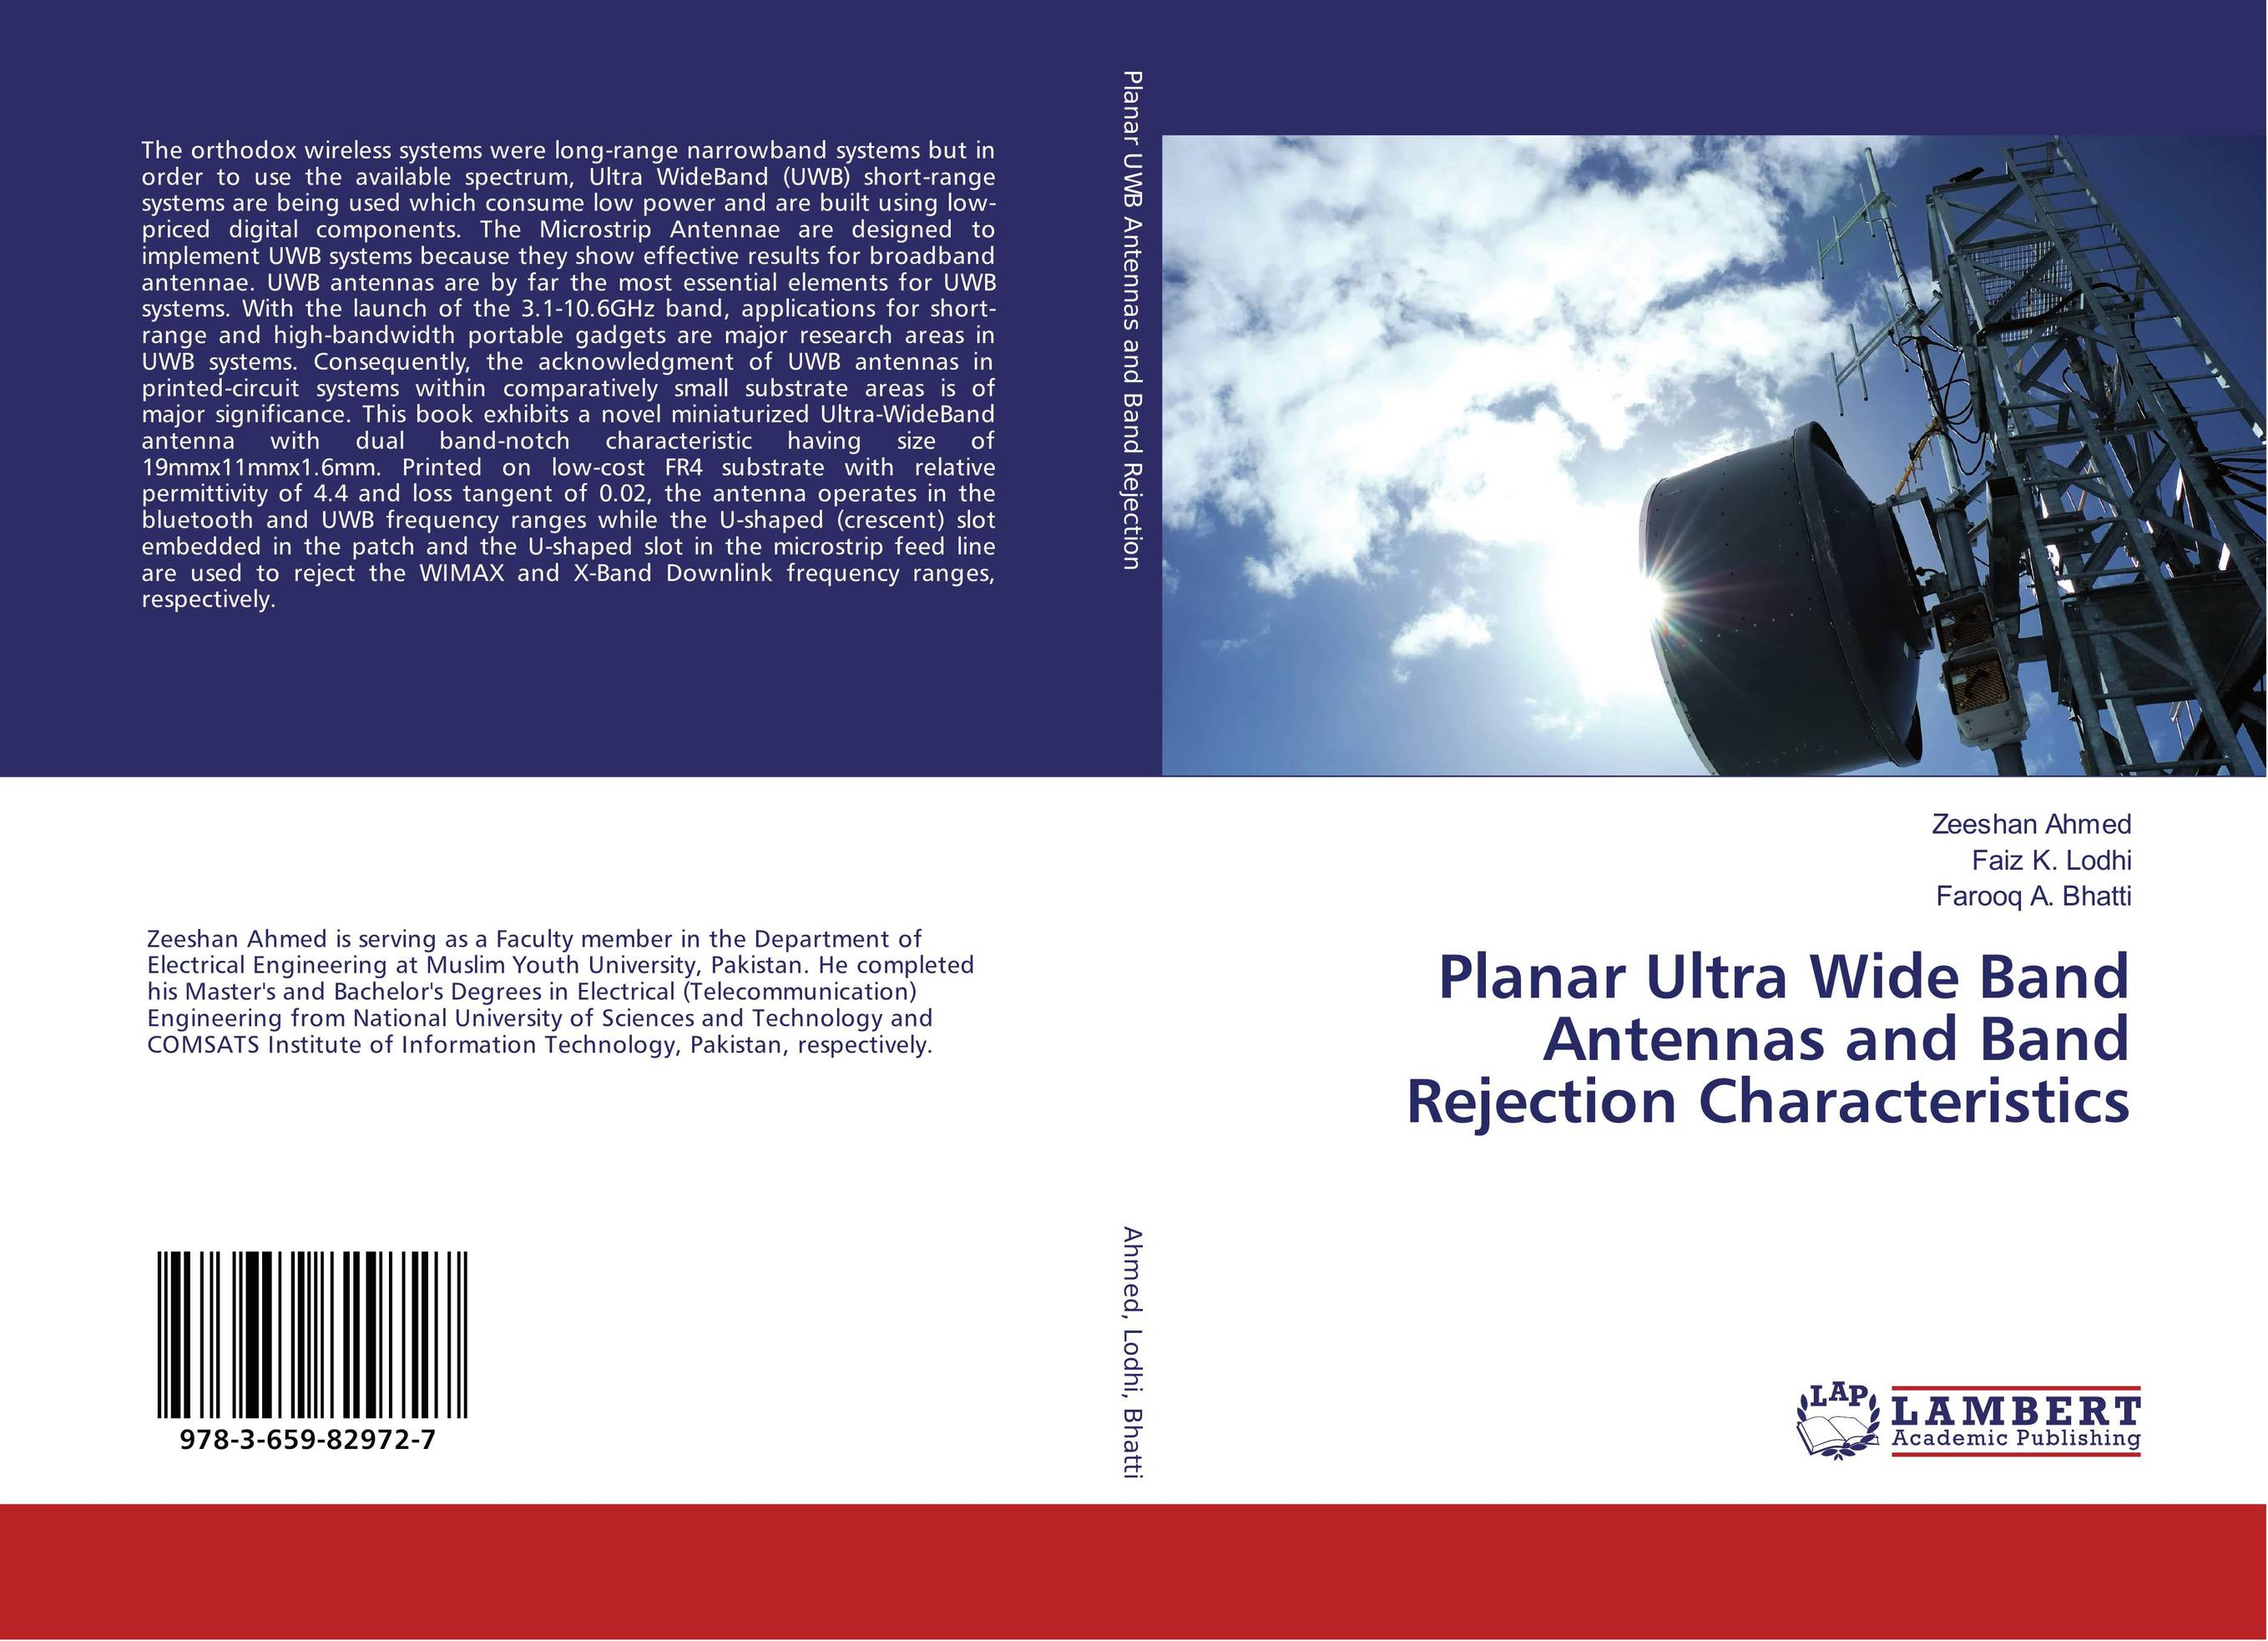 Planar Ultra Wide Band Antennas and Band Rejection Characteristics